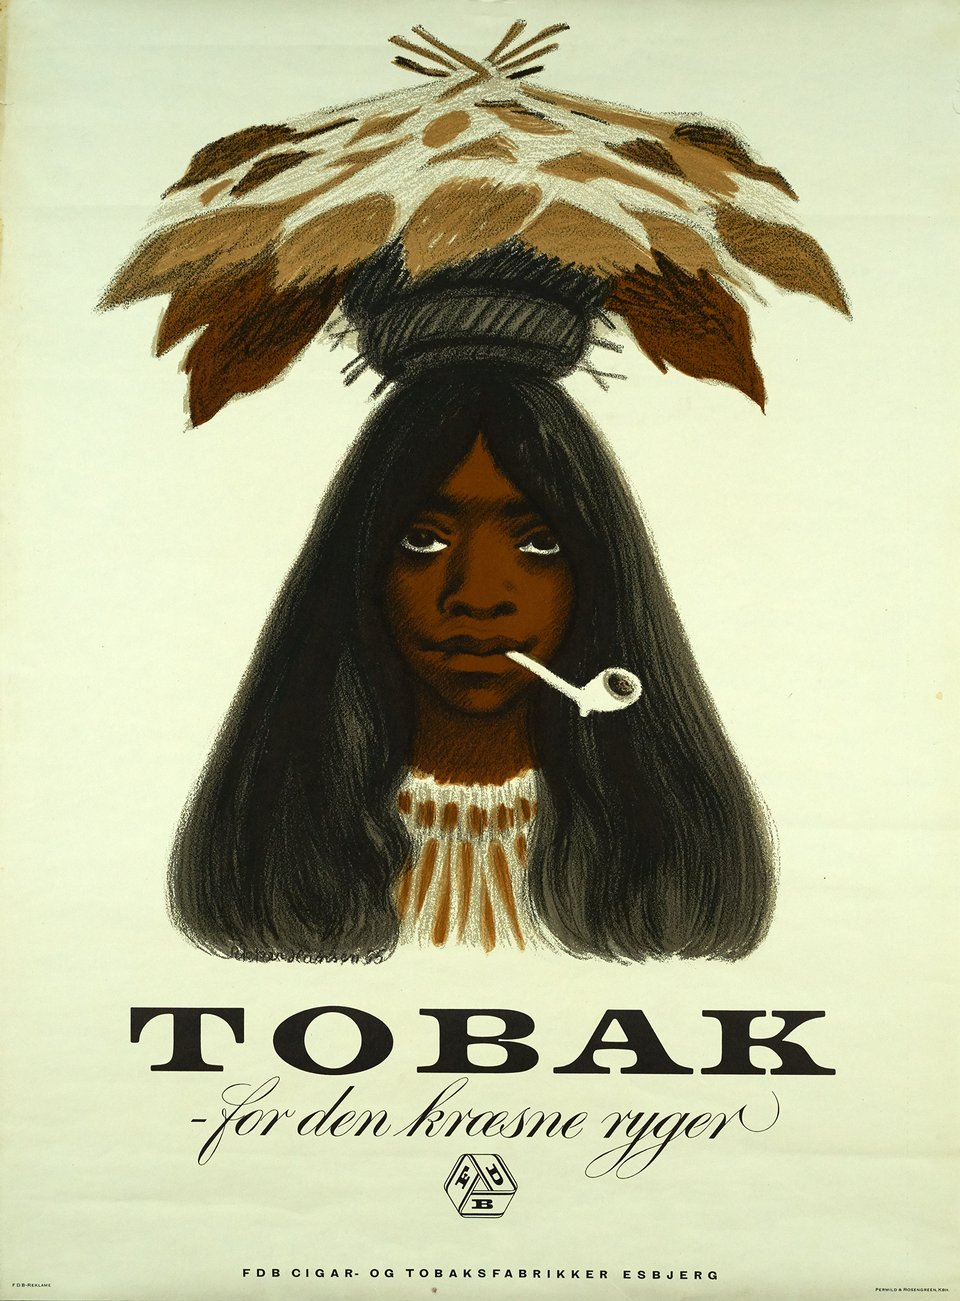 Tobak, For den kroesne ryger – Affiche ancienne – Hanson APPER – 1955